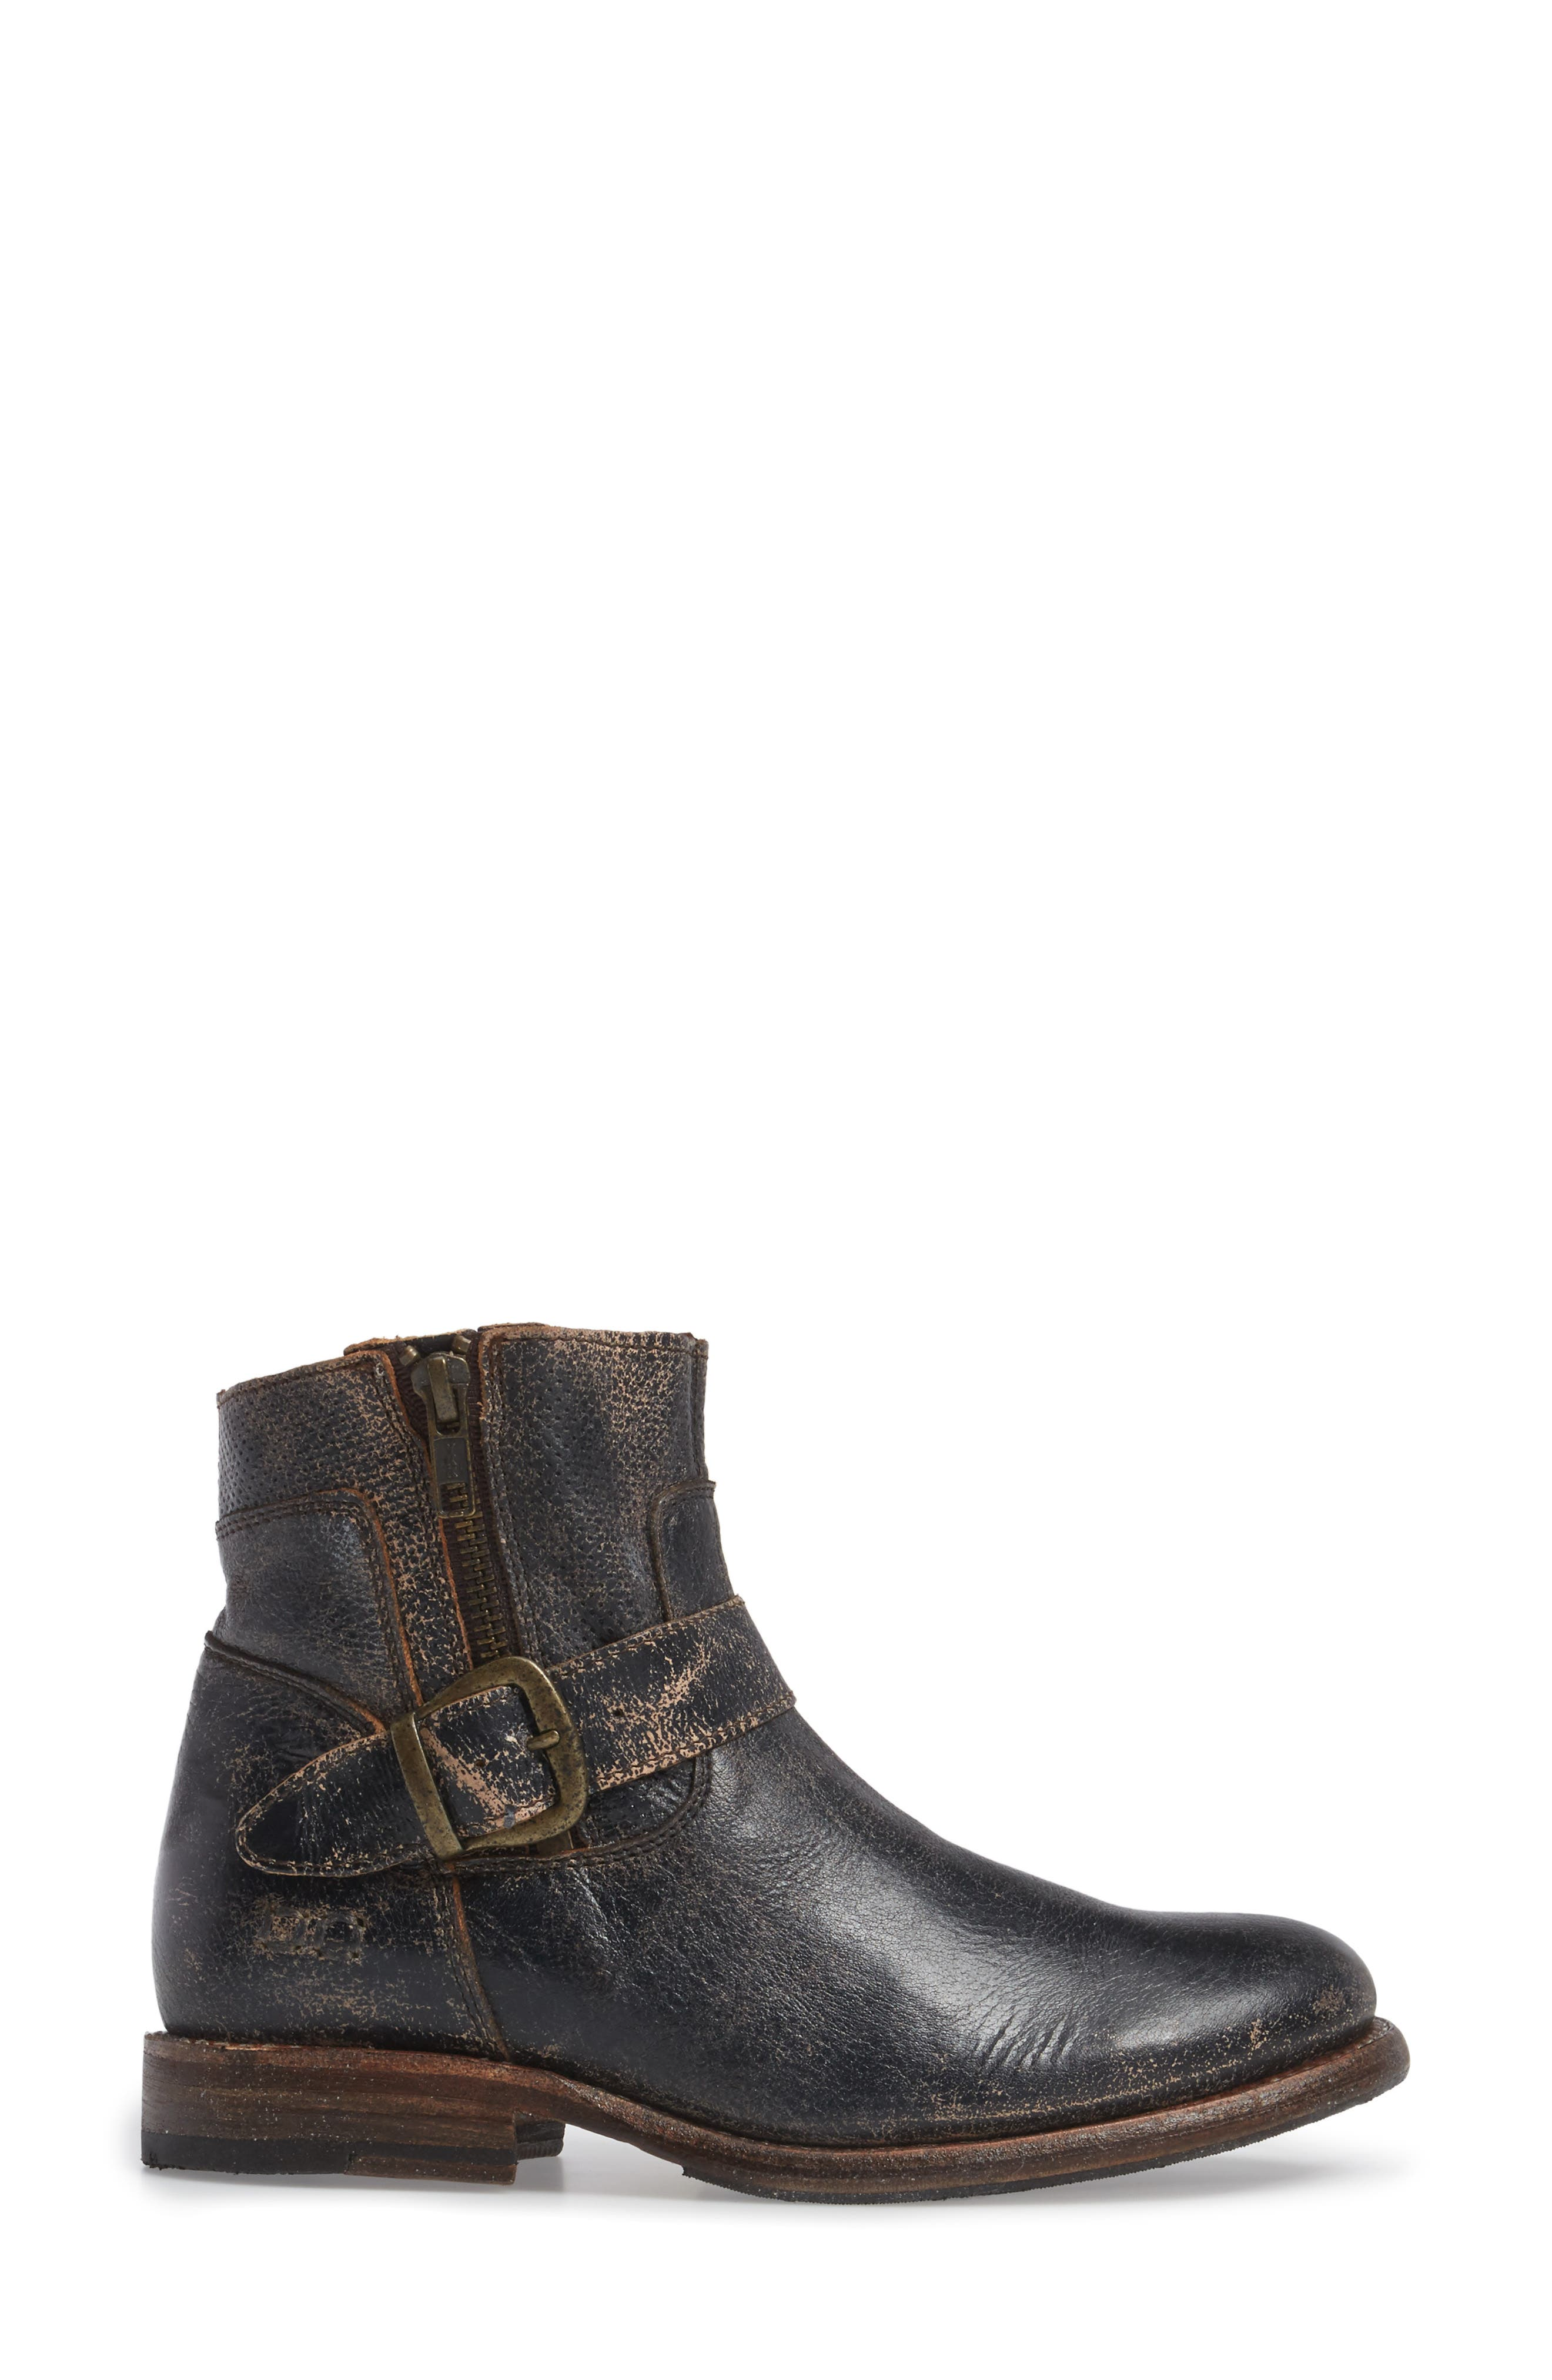 Becca Buckle Boot,                             Alternate thumbnail 3, color,                             008